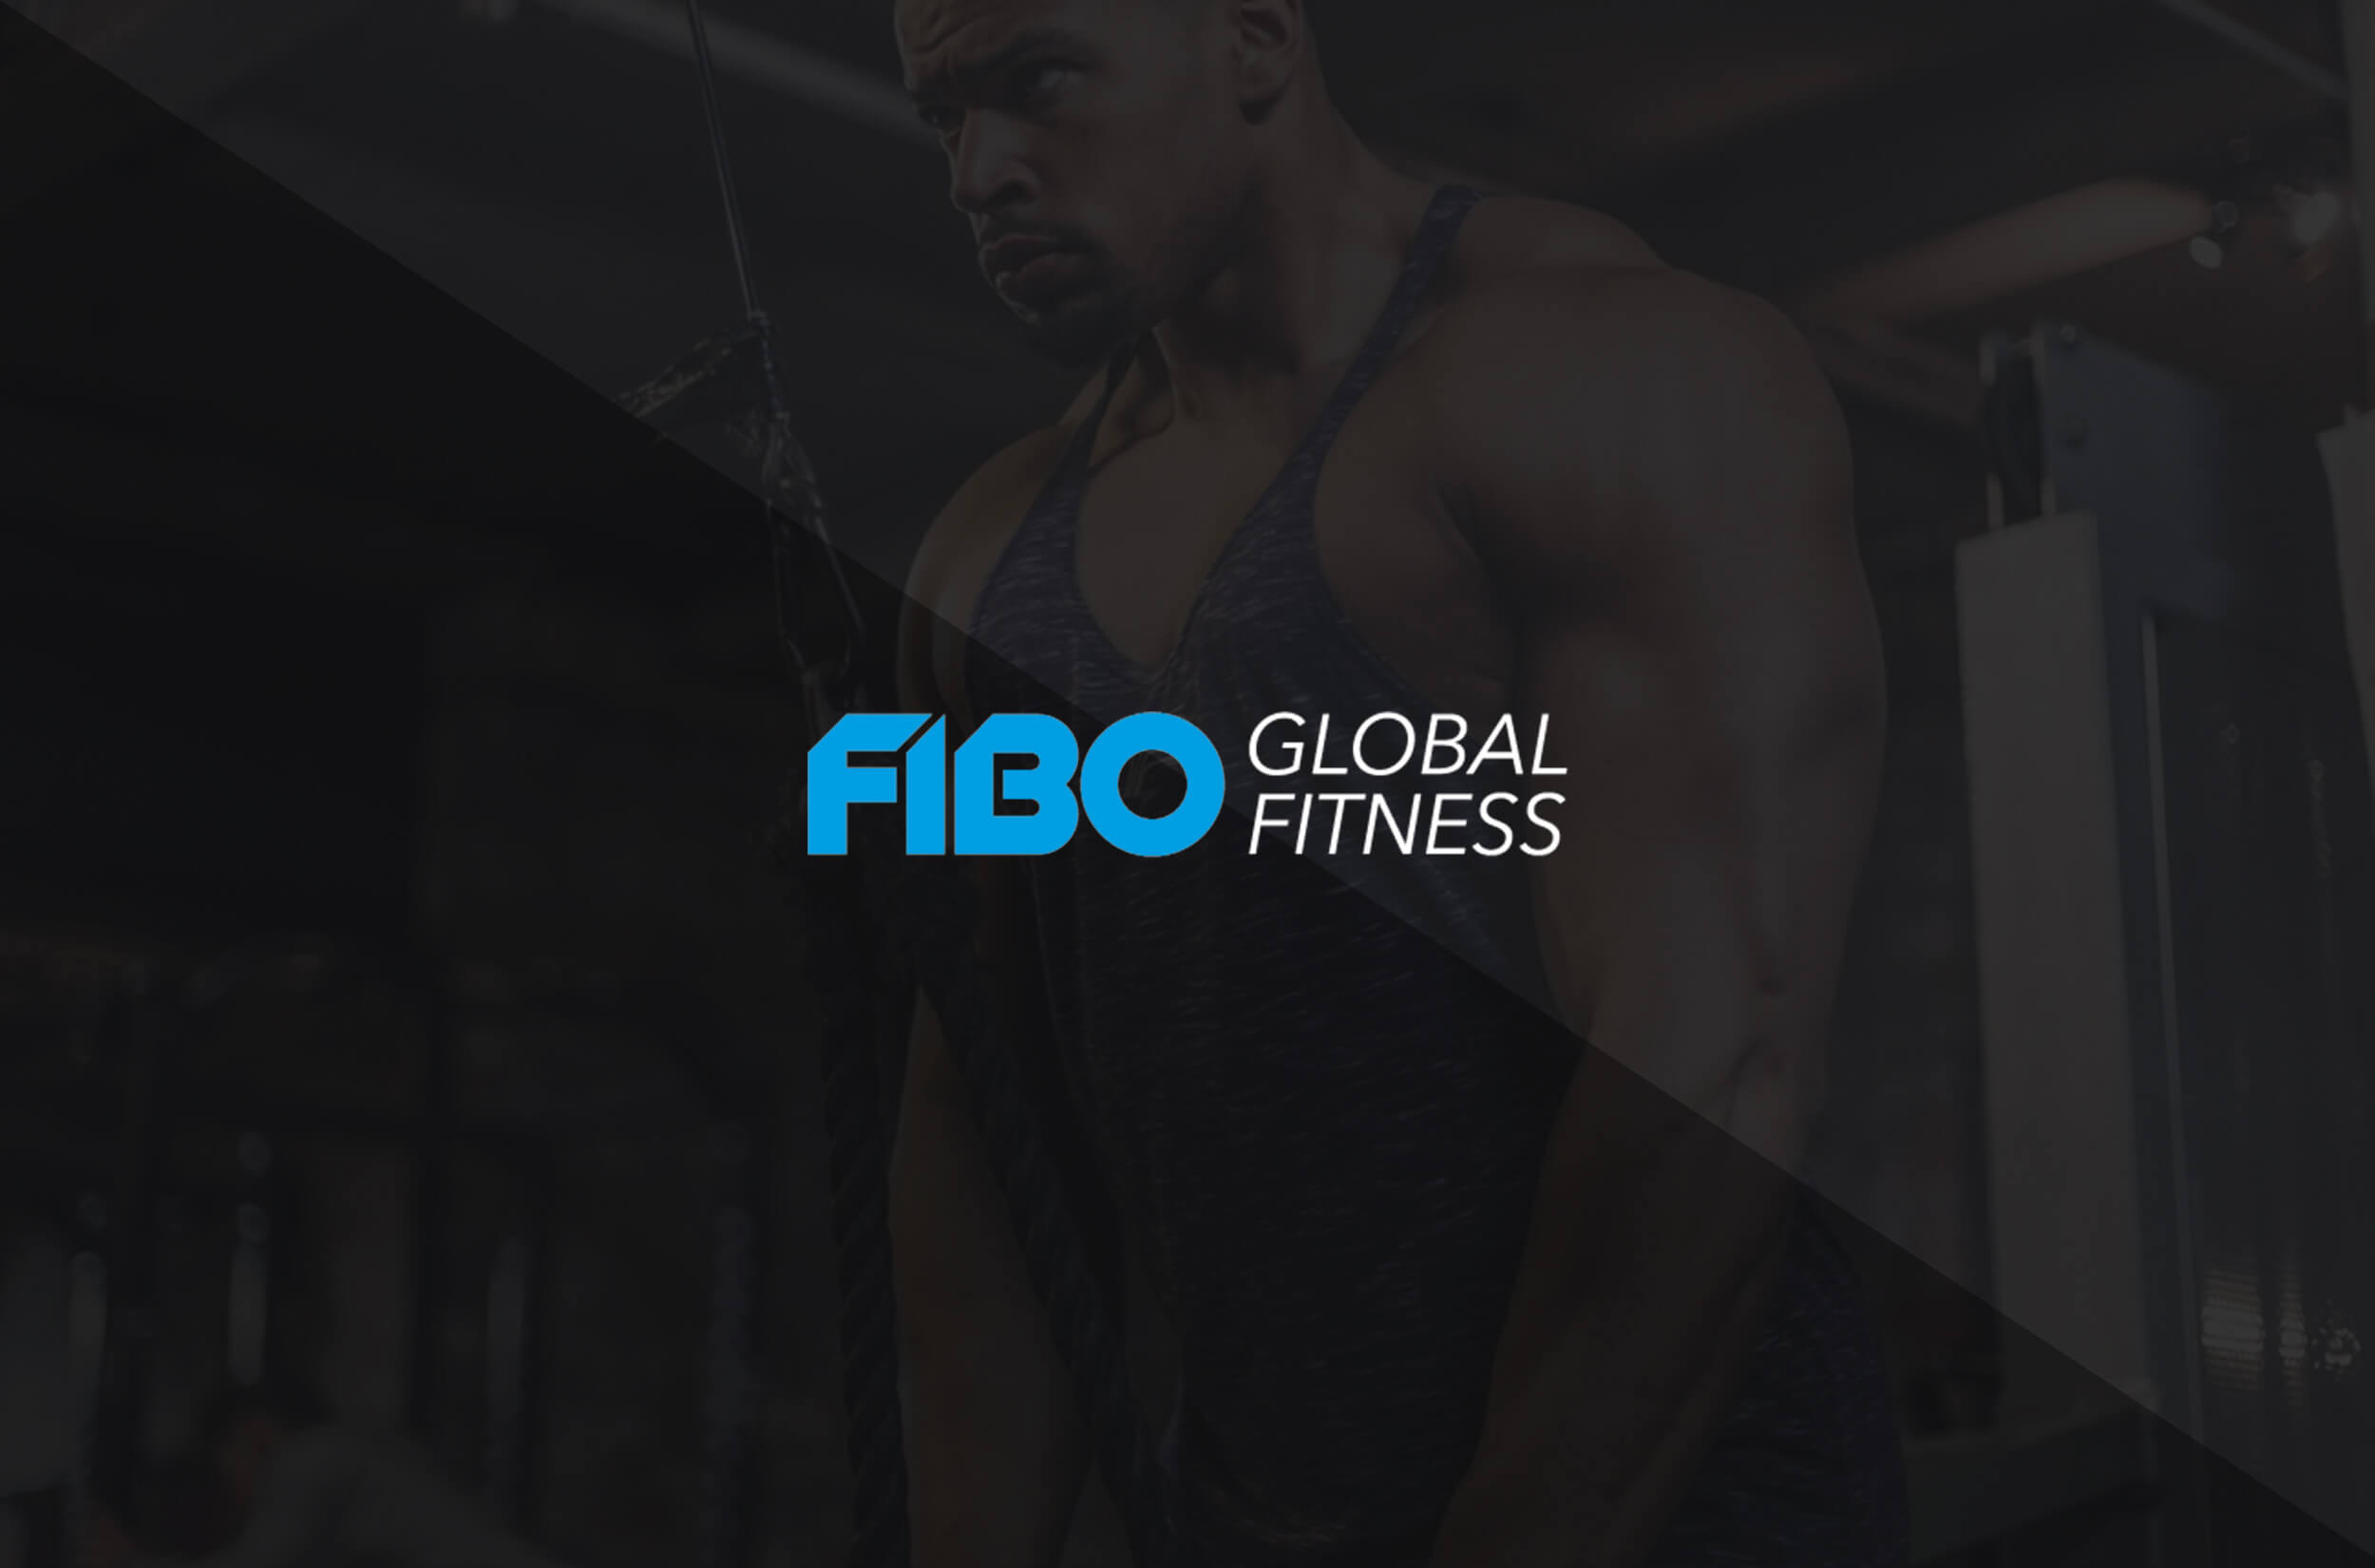 Pursue Fitness Comes To FIBO!